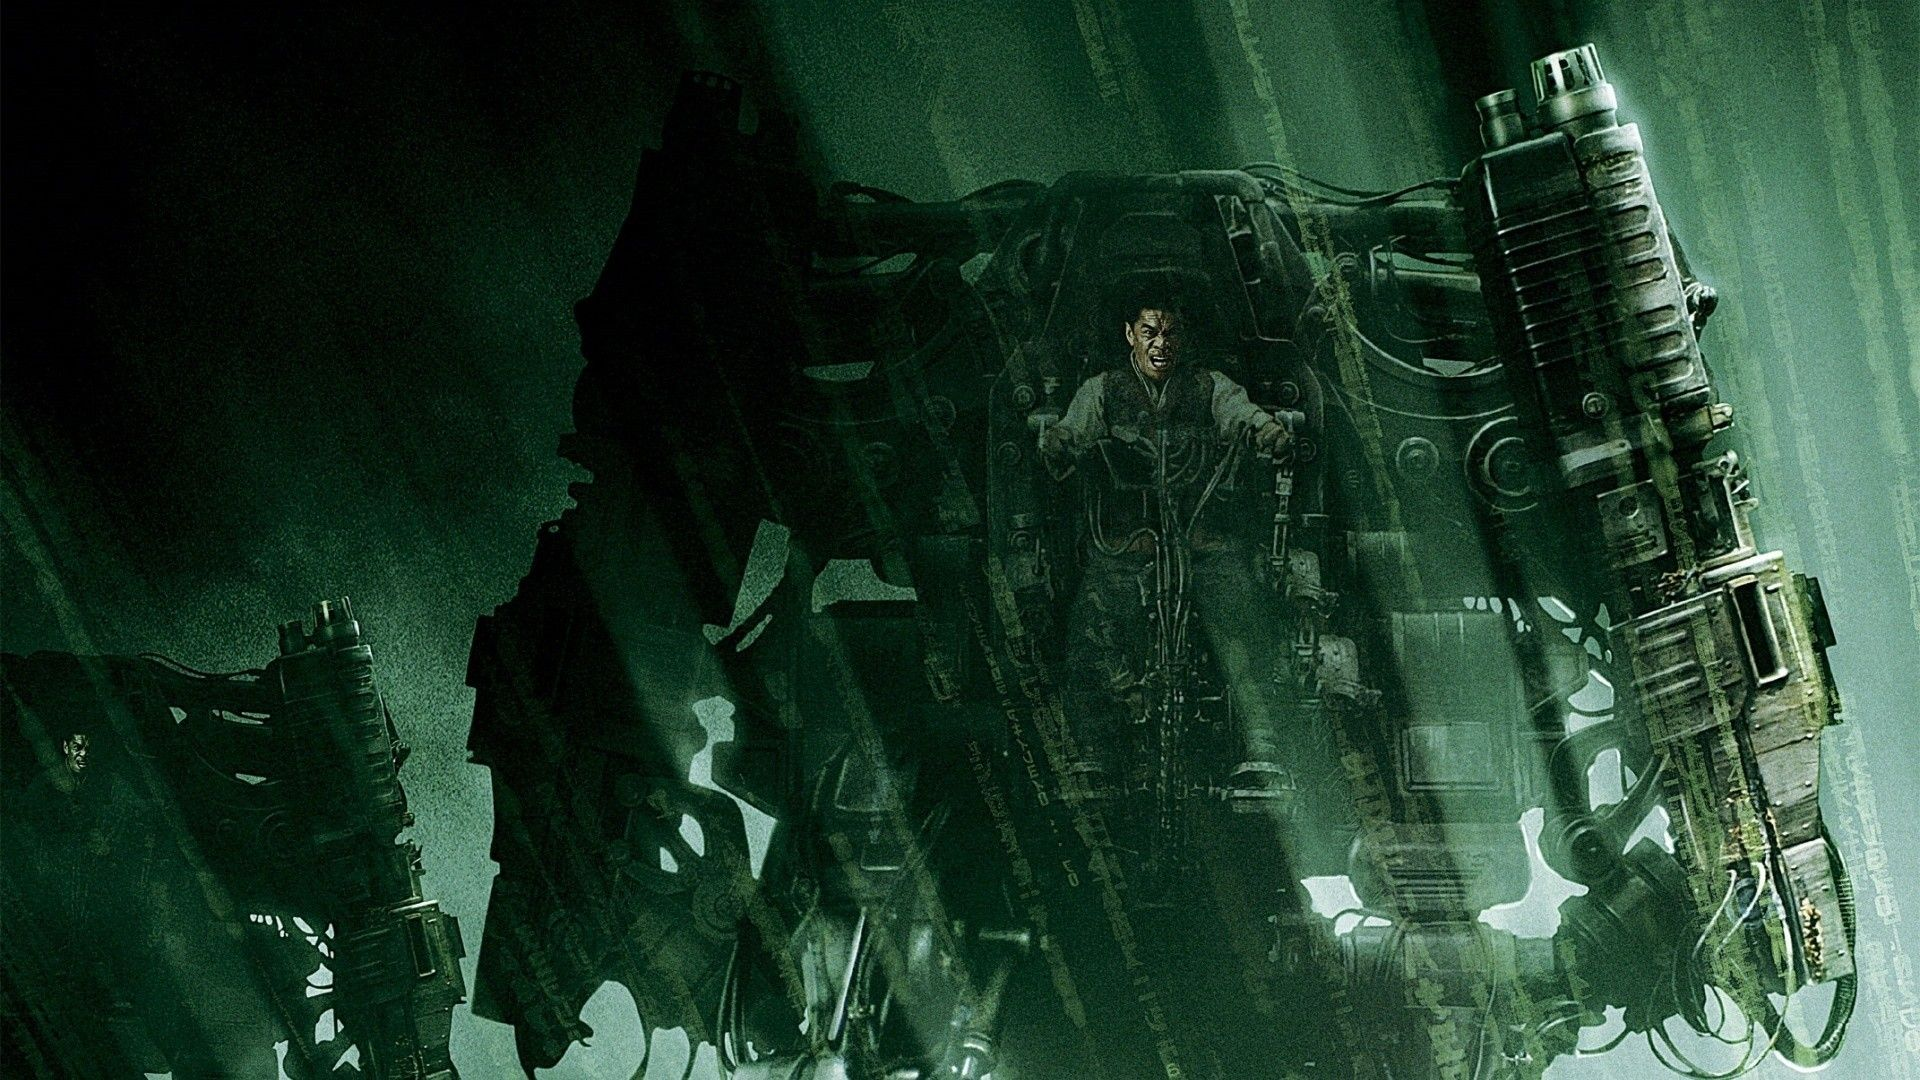 Matrix Live Wallpaper GTAMods The Wallpapers Christmas For Mac 1920x1080